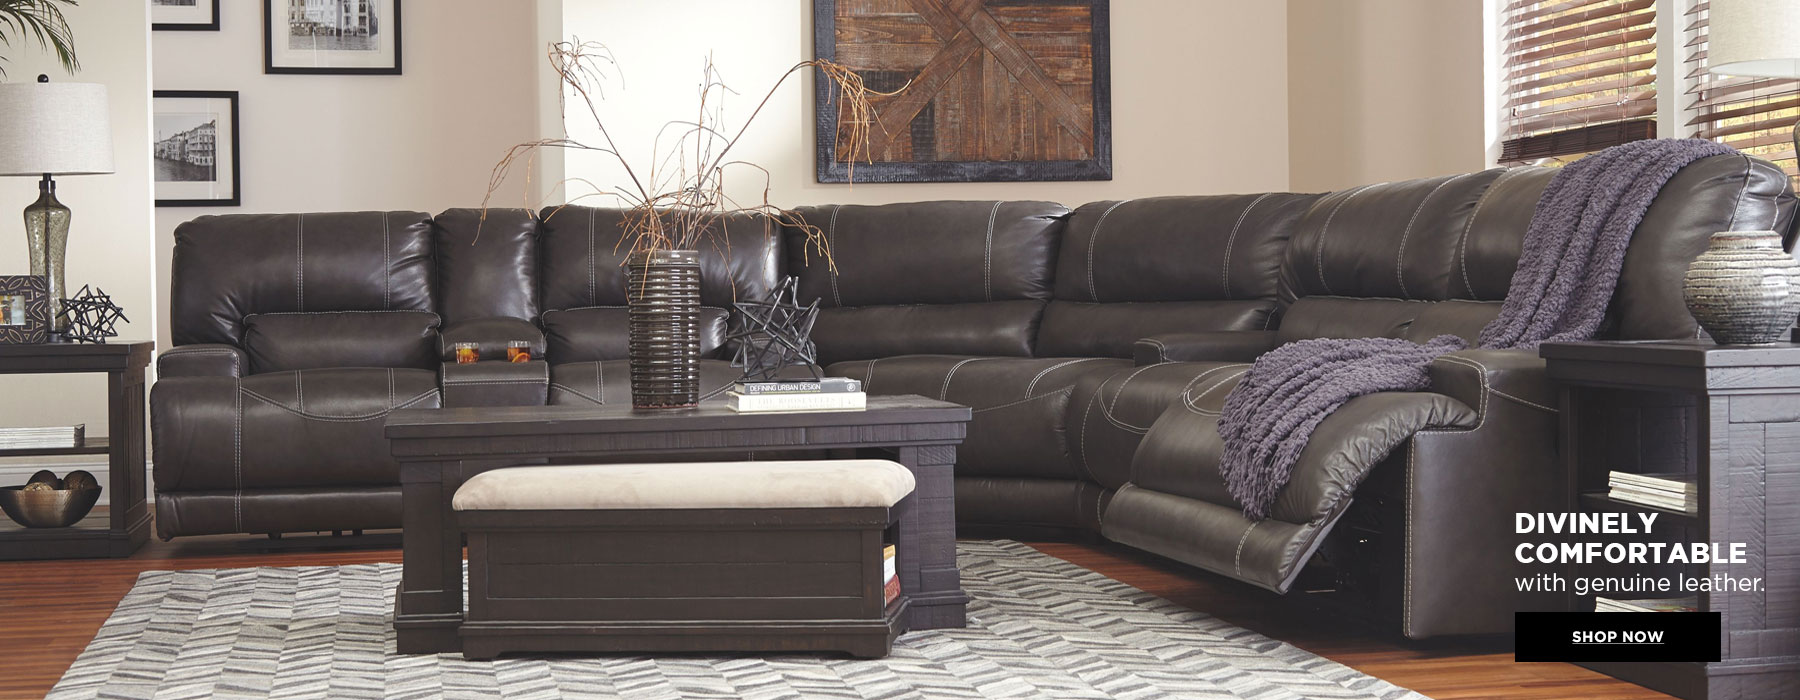 Your Home Furniture Store Destination In Philadelphia New Jersey